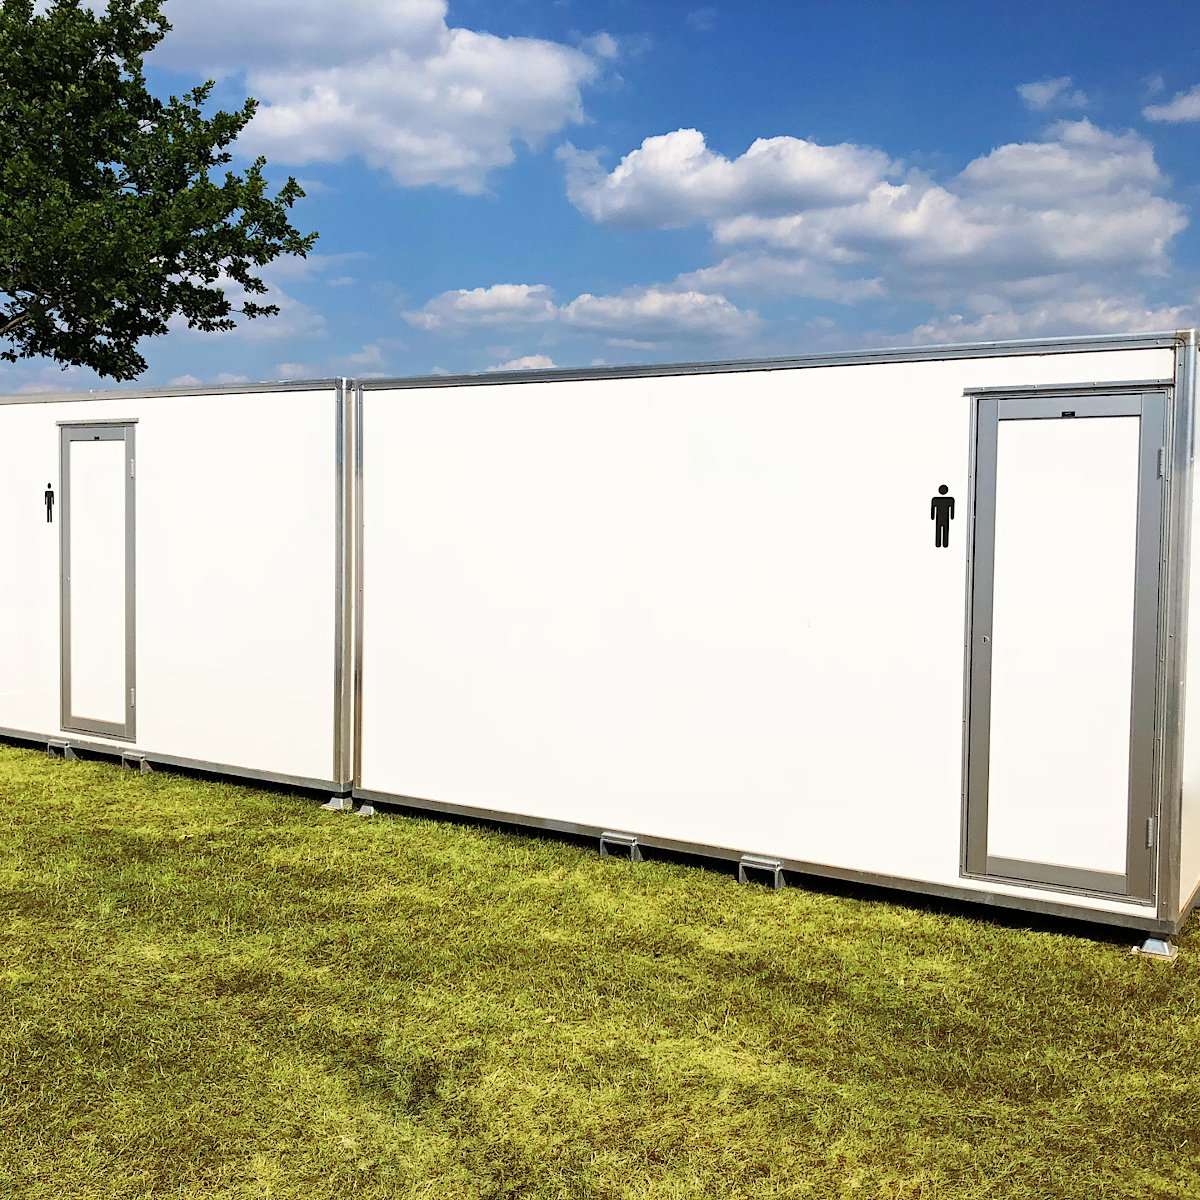 Male 2 + 7 VACPOD 13 Bay Urinal VACPOD Festivals Concerts Exclusive VIP Toilets Rental Delivery Onsite Service